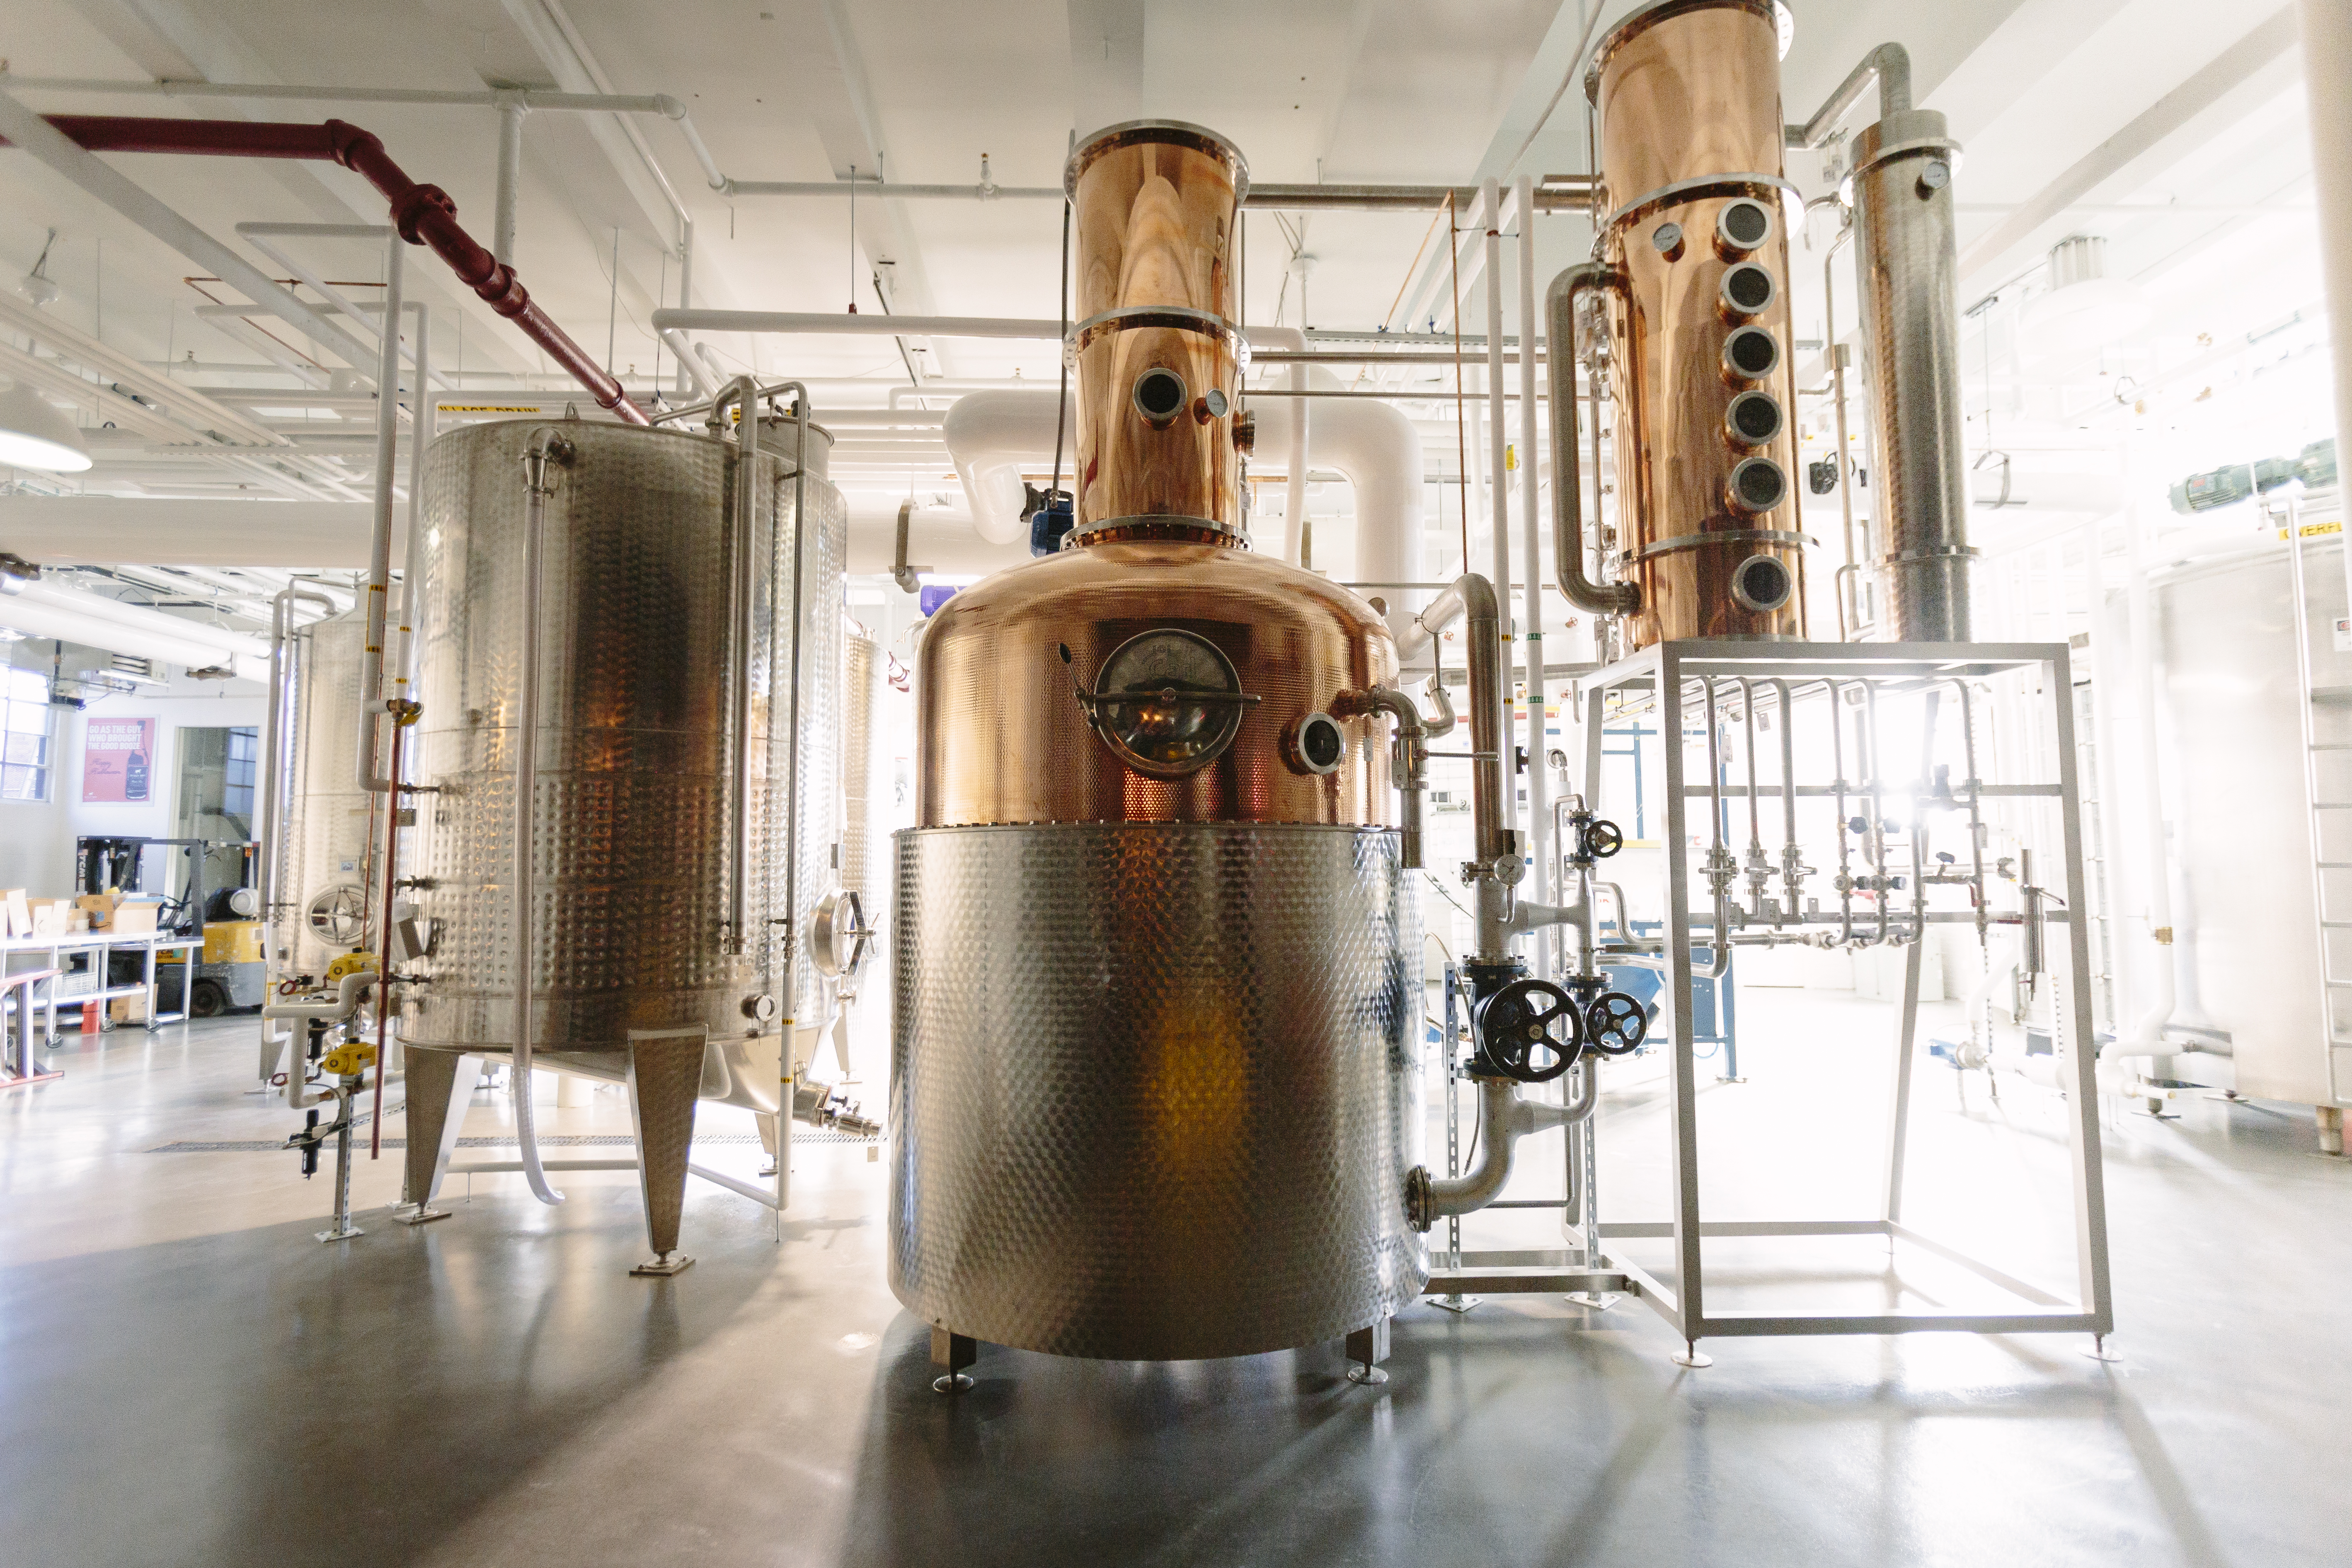 The 750-gallon copper pot still at Bully Boy Distillers